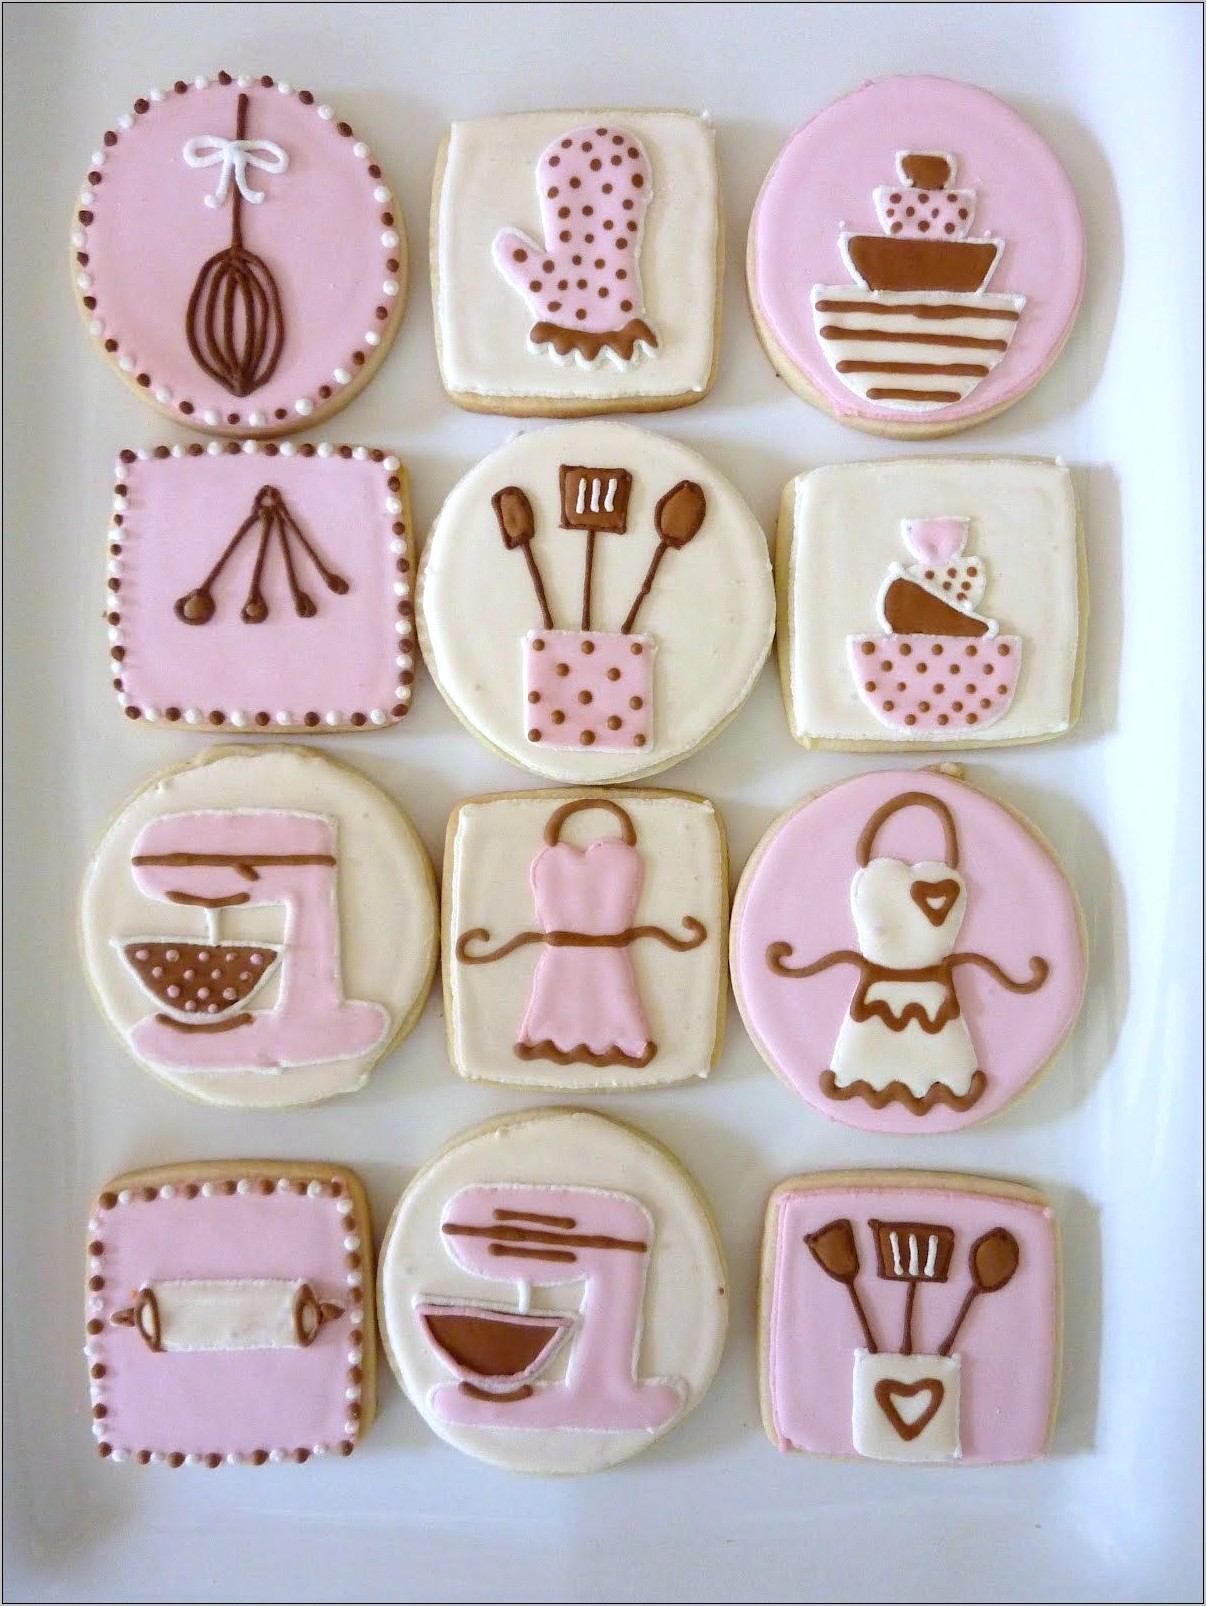 Decorating Sugar Cookies With Kitchen Items